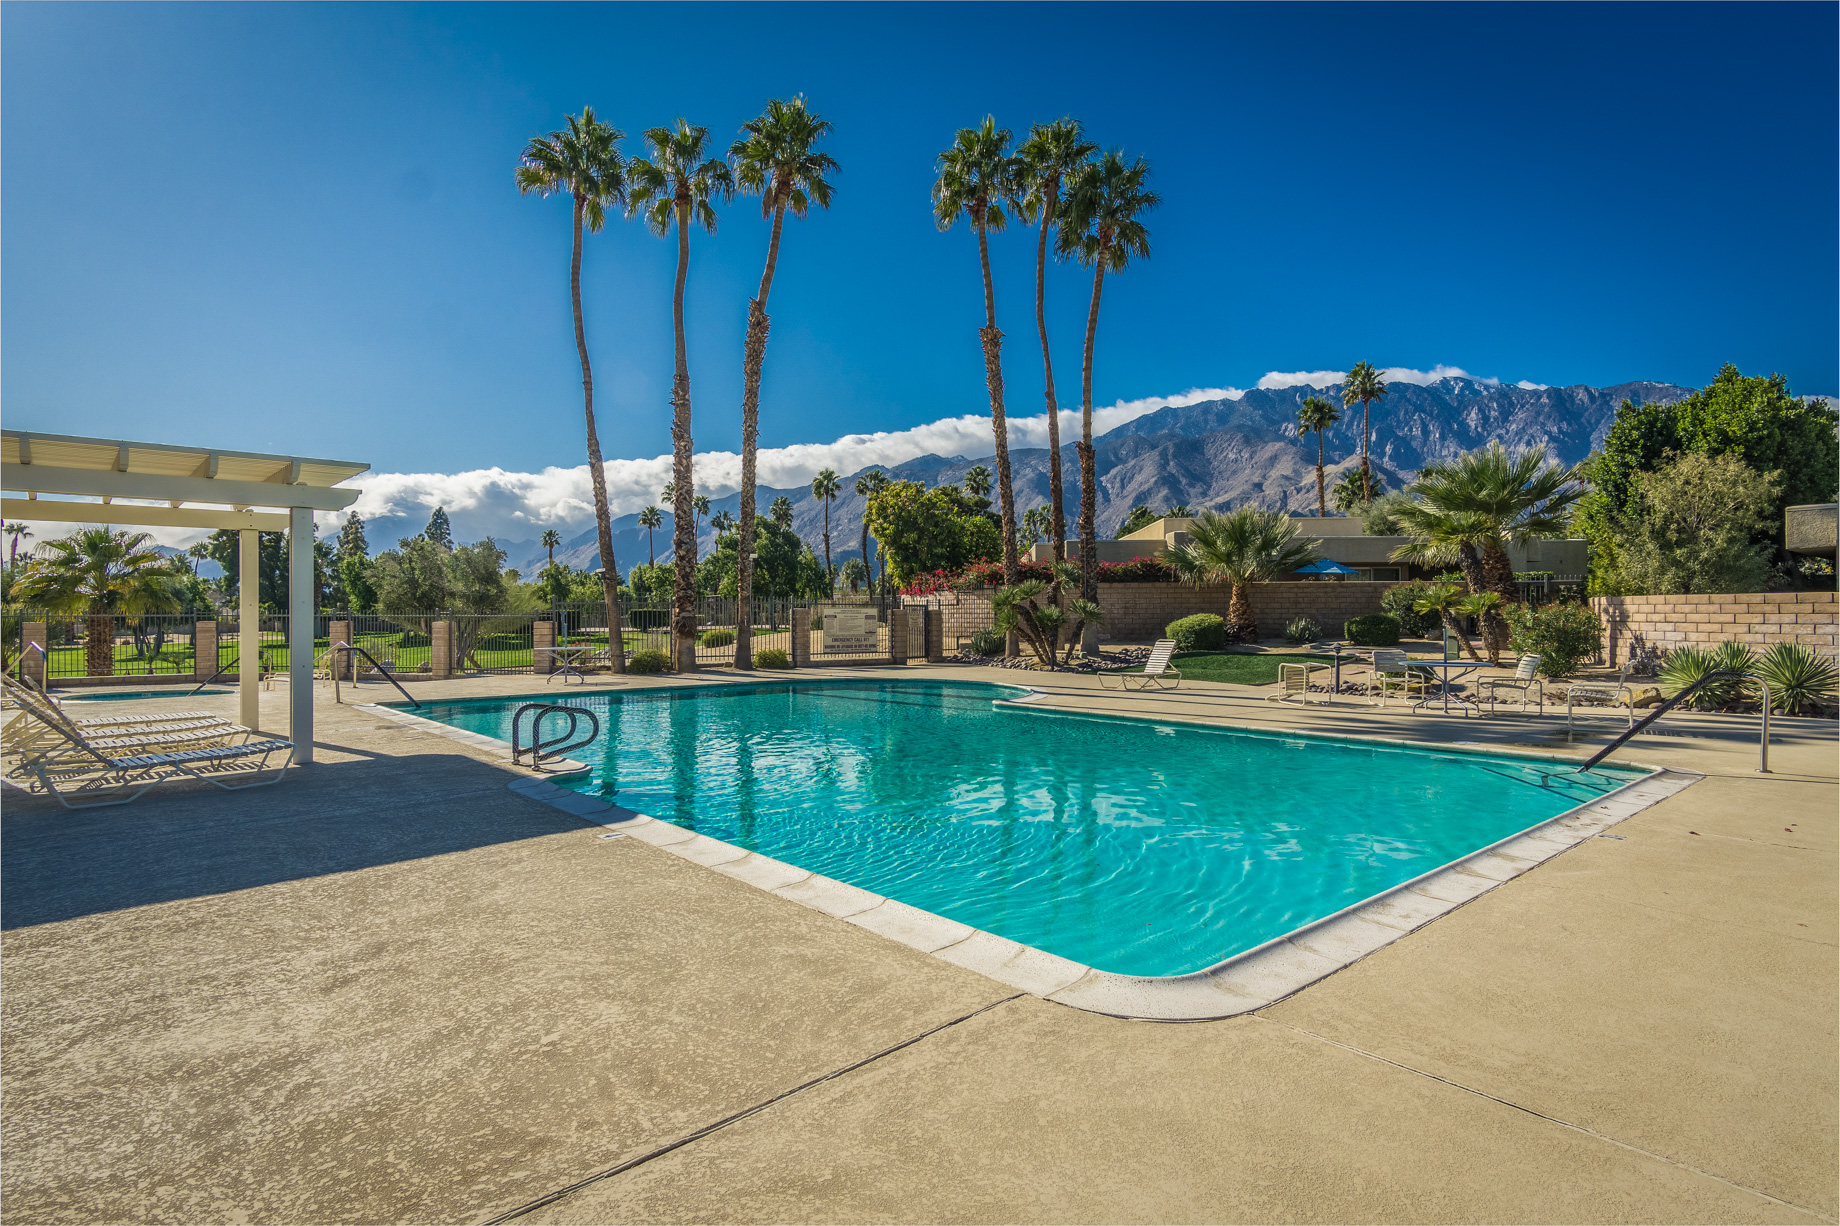 https://realbird.blob.core.windows.net/rb-photos/310-sunflower-circle-s-palm-springs-ca-92262_B8B2F5D8_559608_637148121432189132_80x60.jpg